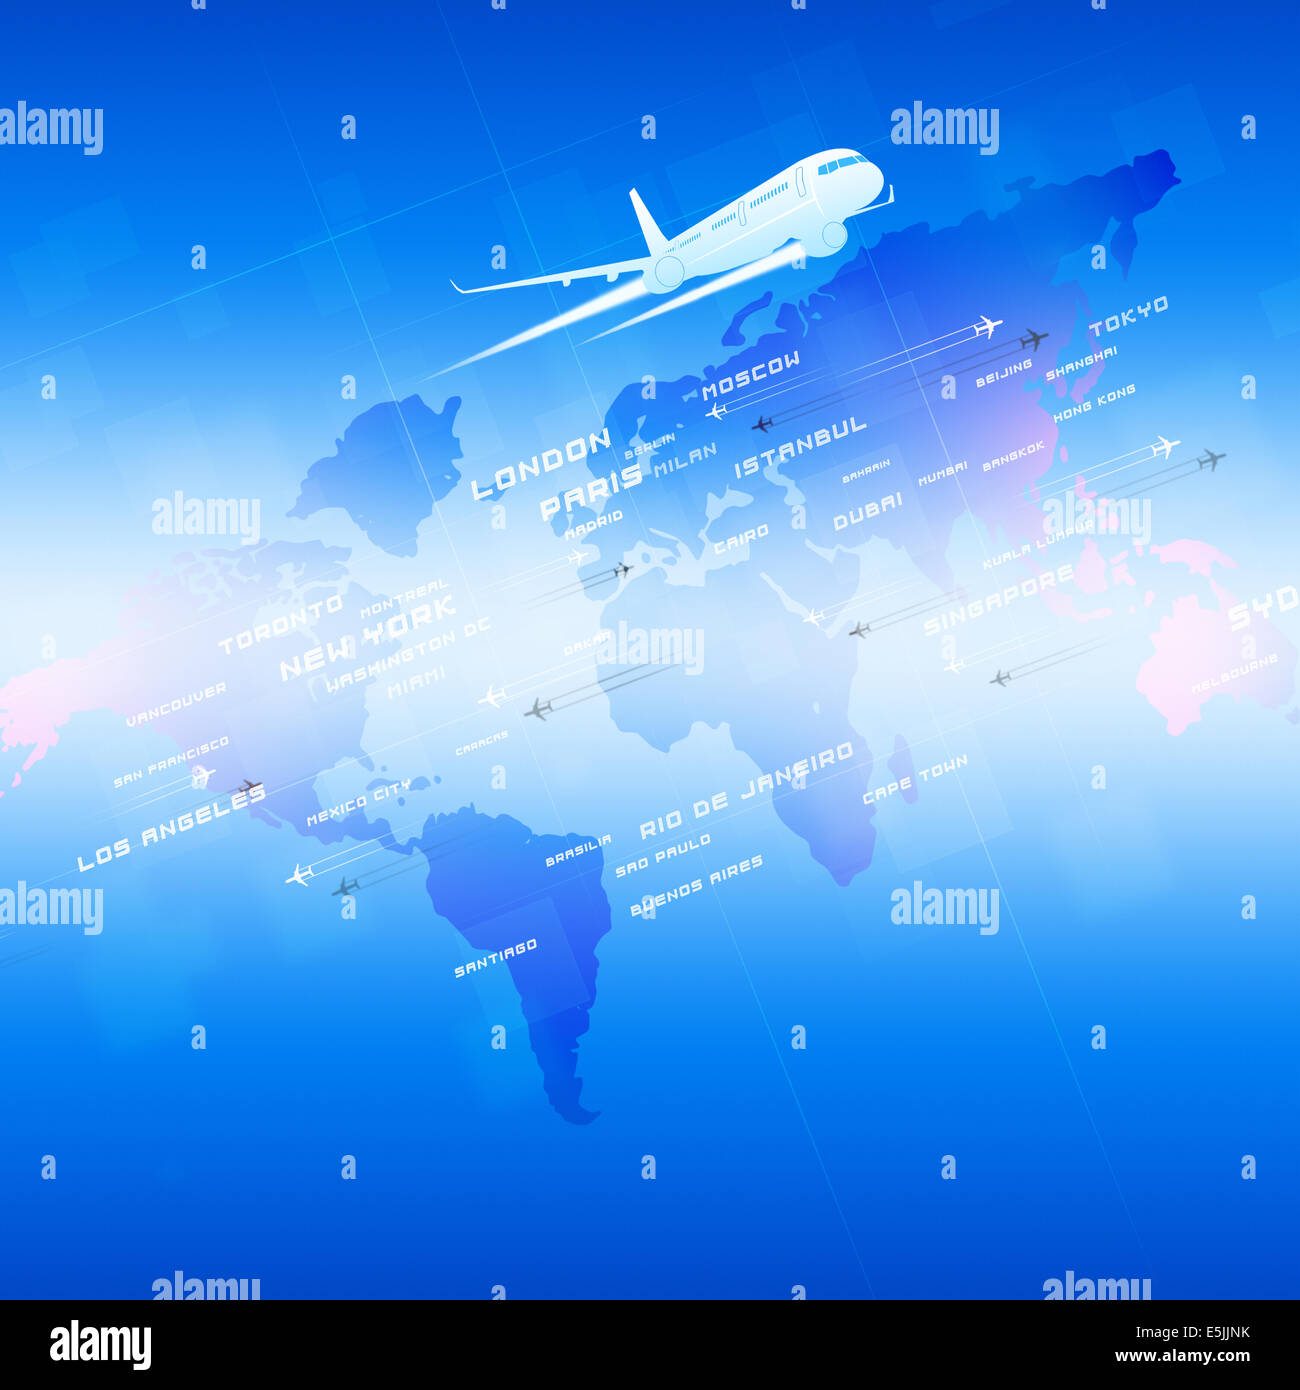 global aviation background with planes and city names on a map Stock Photo